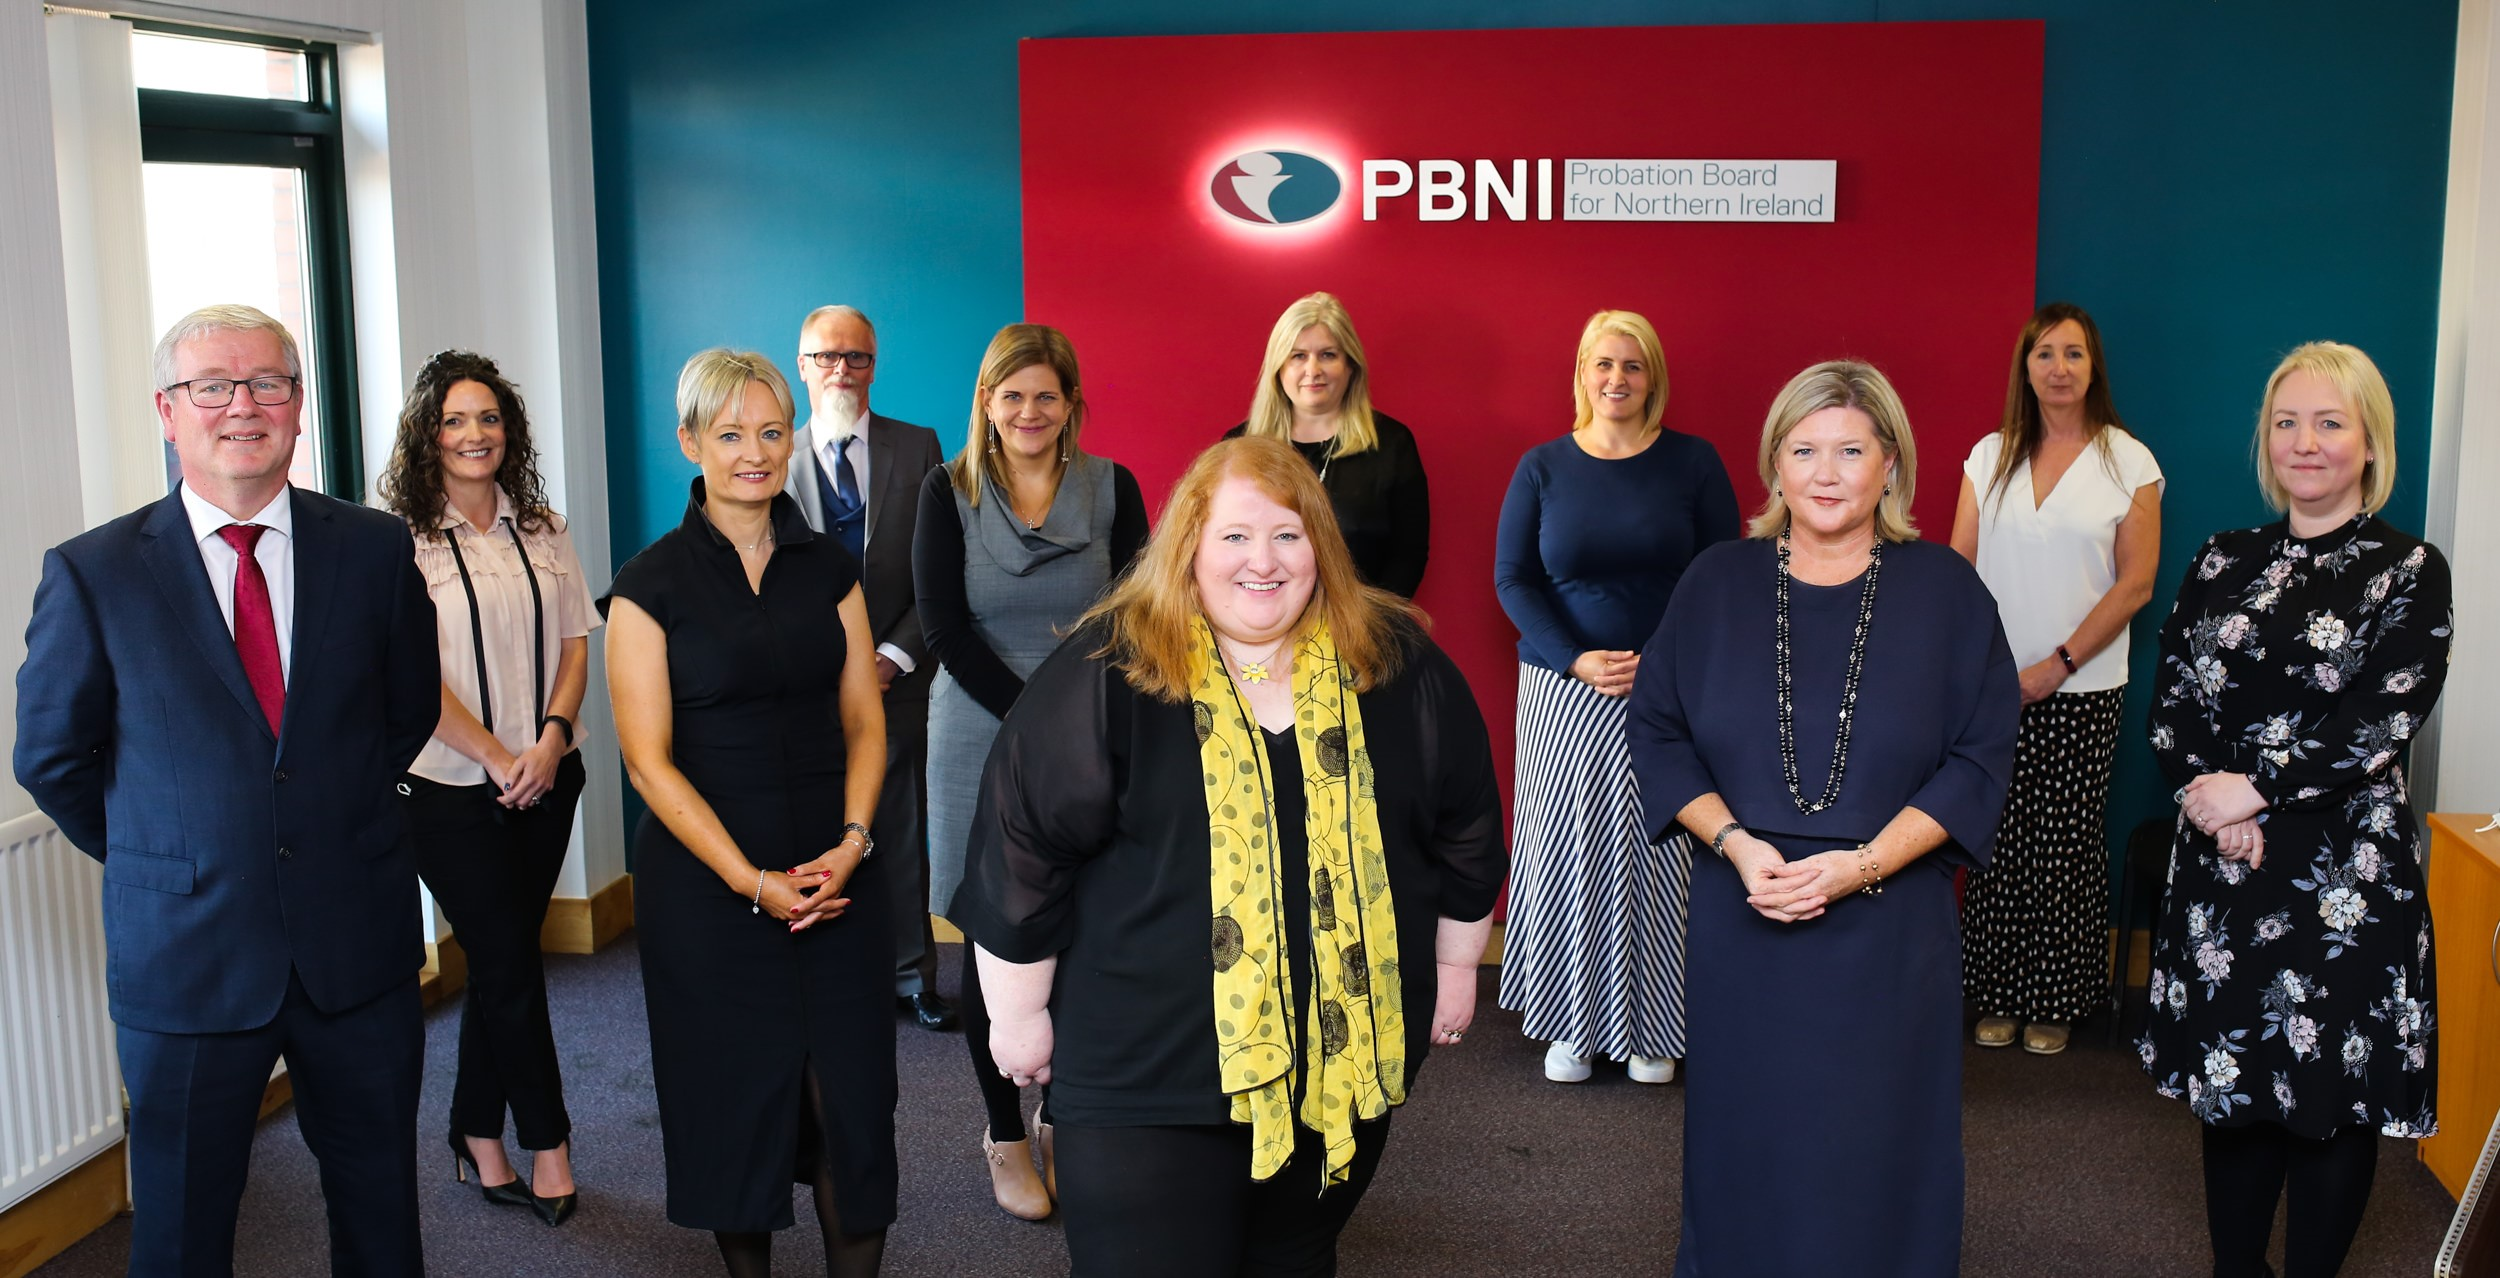 Justice Minister meets probation staff